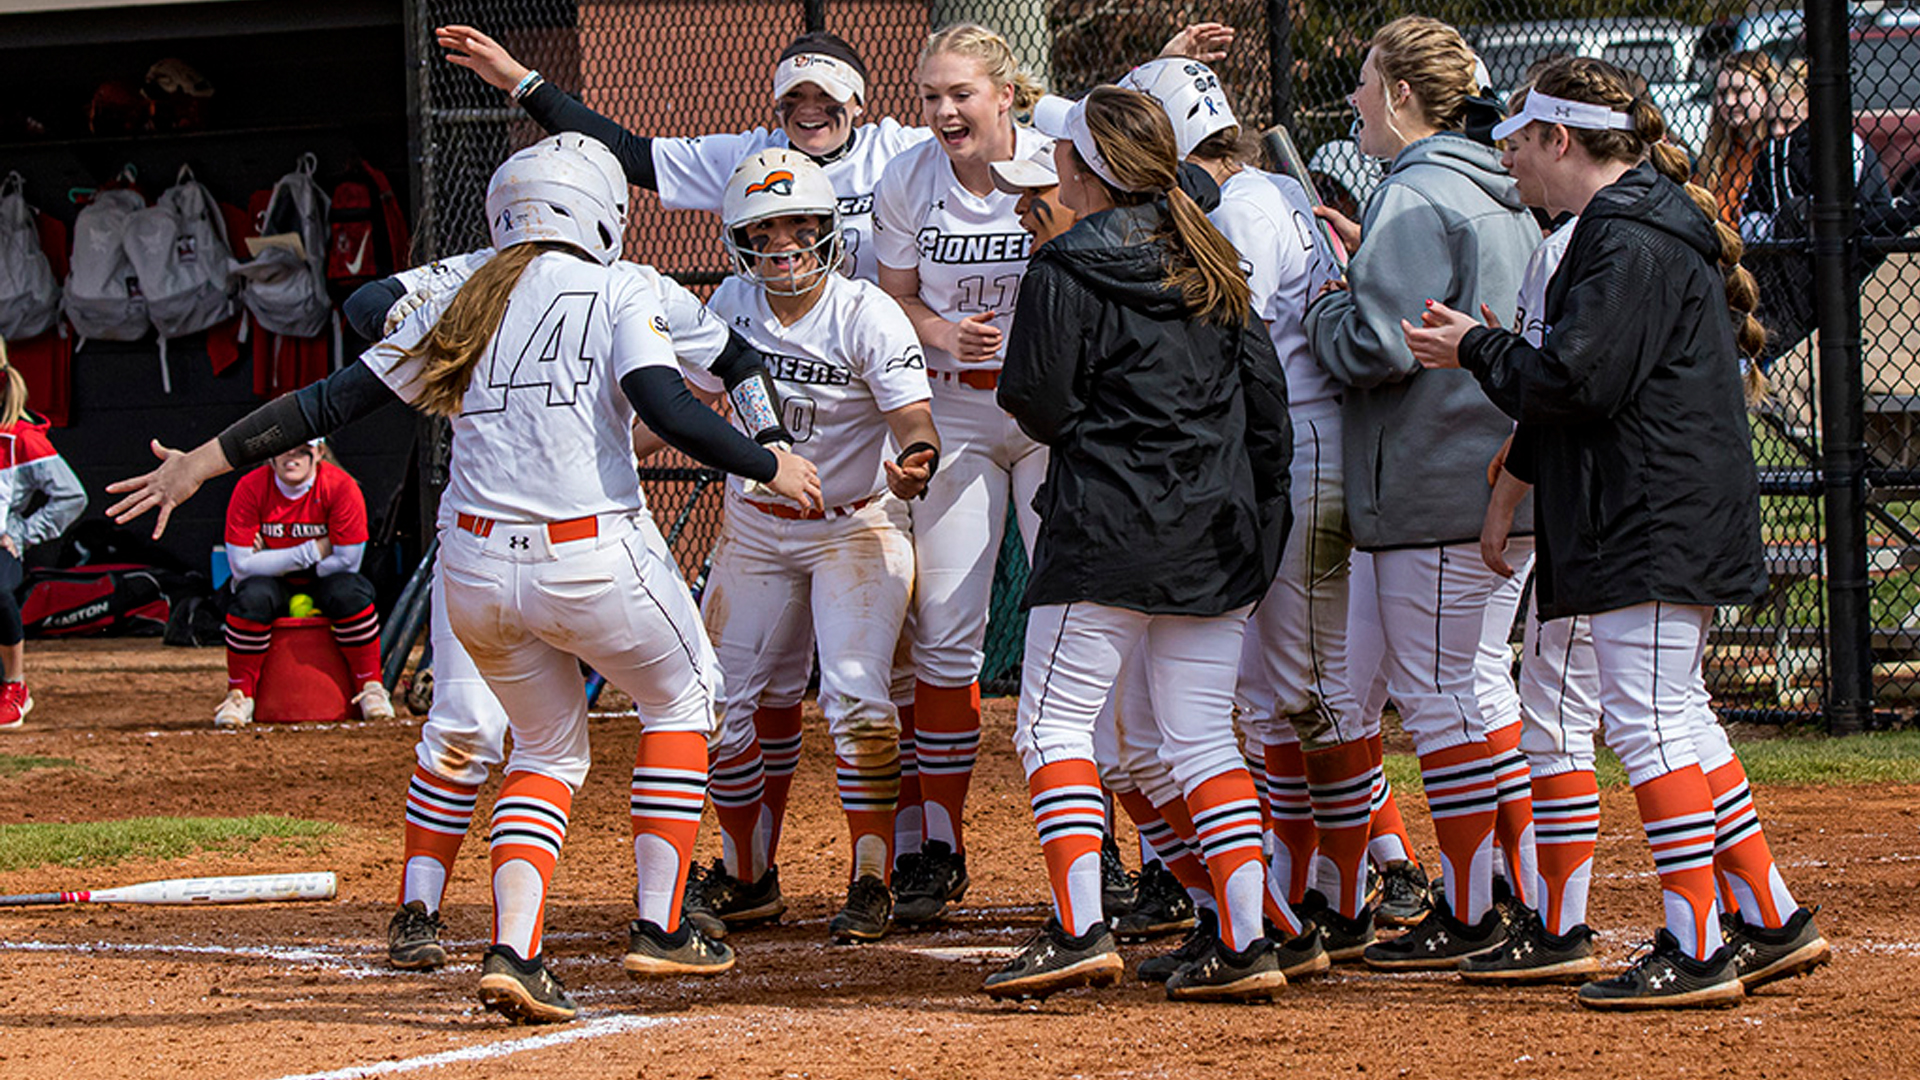 Choloe Freischmidt hits a grand slam in game one to spark a Sunday DH sweep over Davis & Elkins (photo by Chuck Williams)